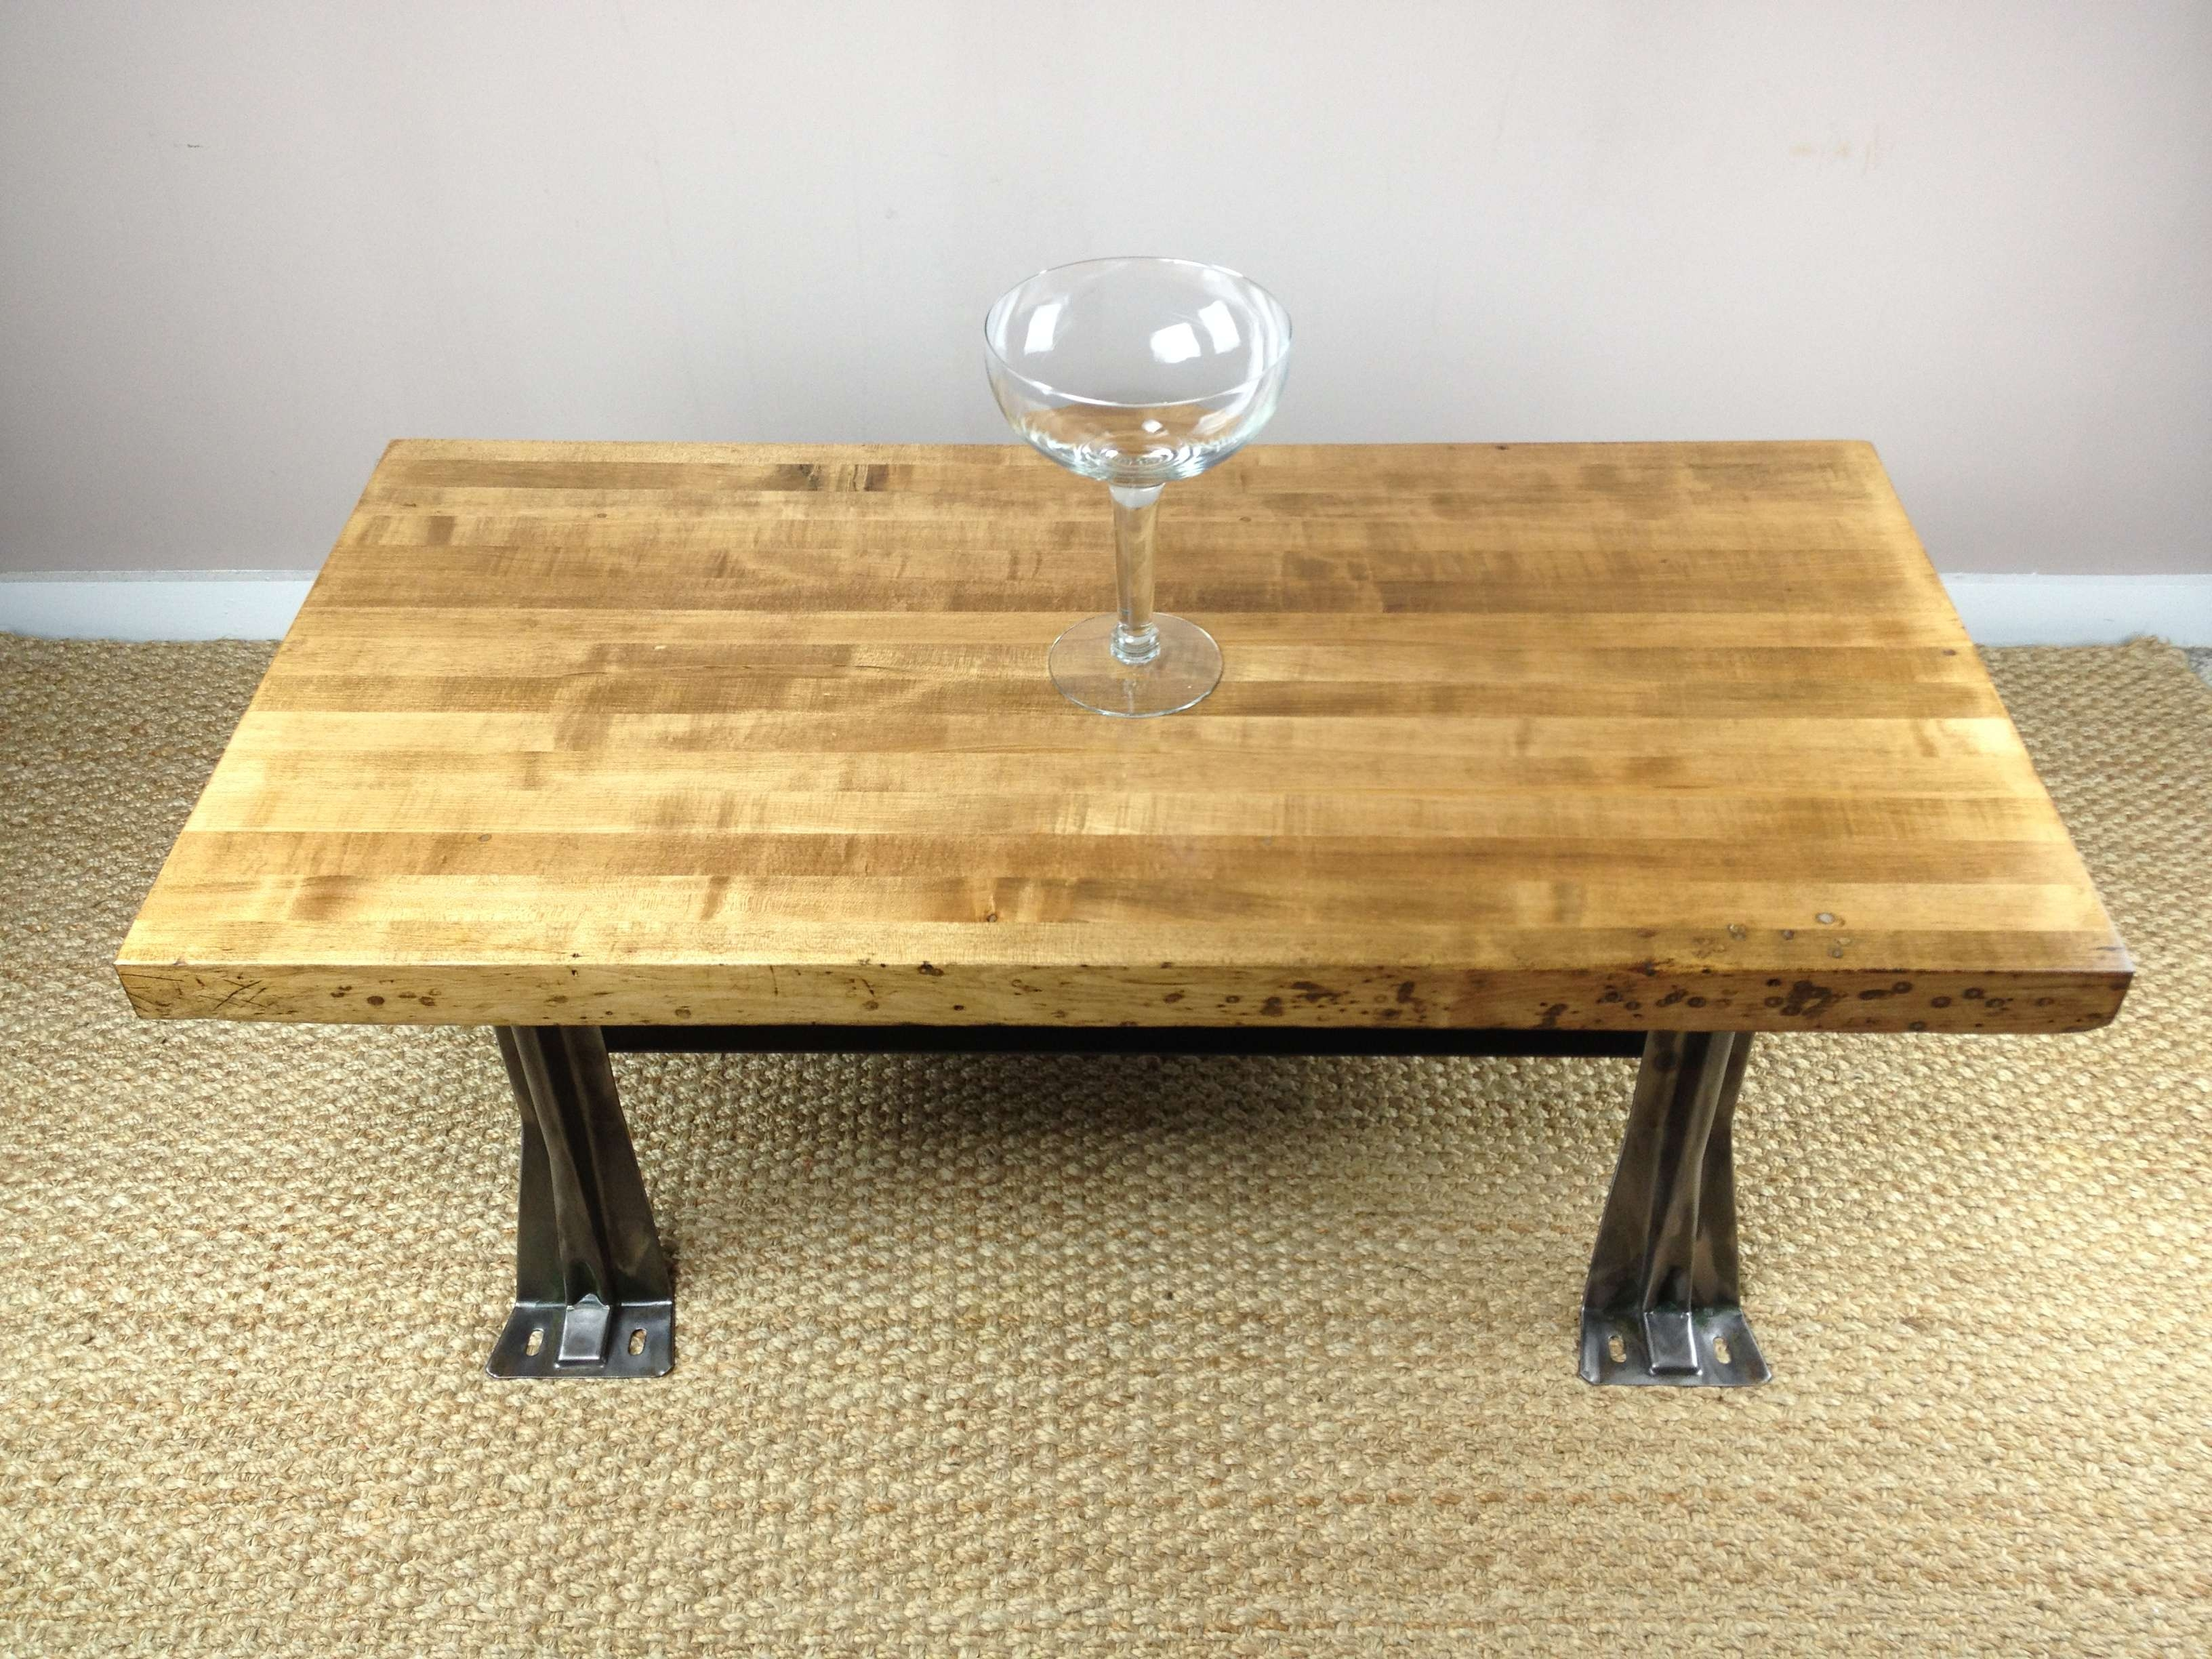 Preferred Large Low Rustic Coffee Tables For Diy Custom Square Low Coffee Table Using Reclaimed Wood Top And (View 5 of 20)